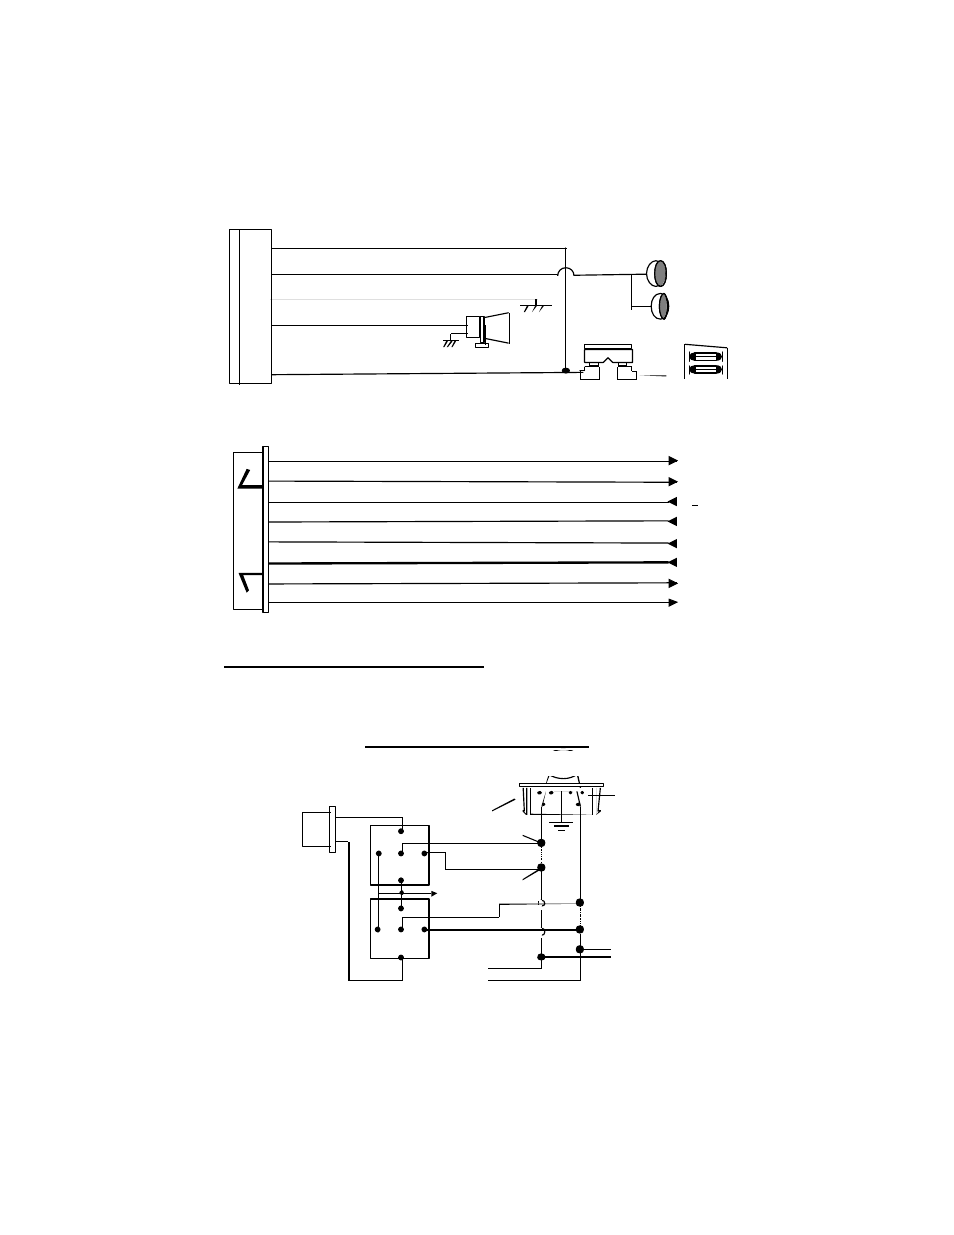 medium resolution of door lock diagrams h1 main 5 pin wire harness auto page rf 350 user manual page 3 16